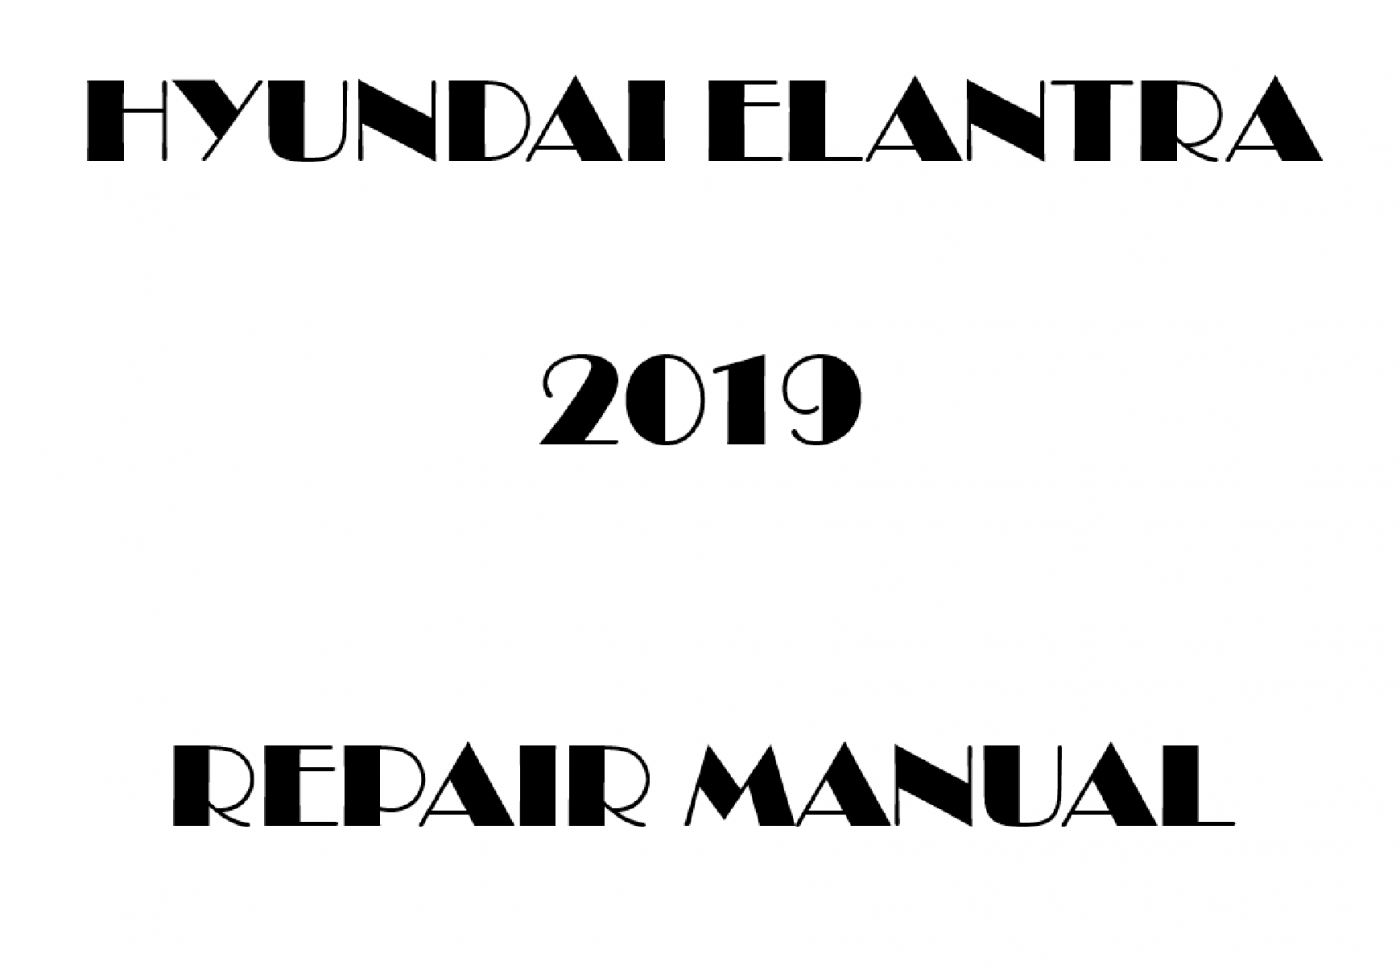 2019 Hyundai Elantra repair manual